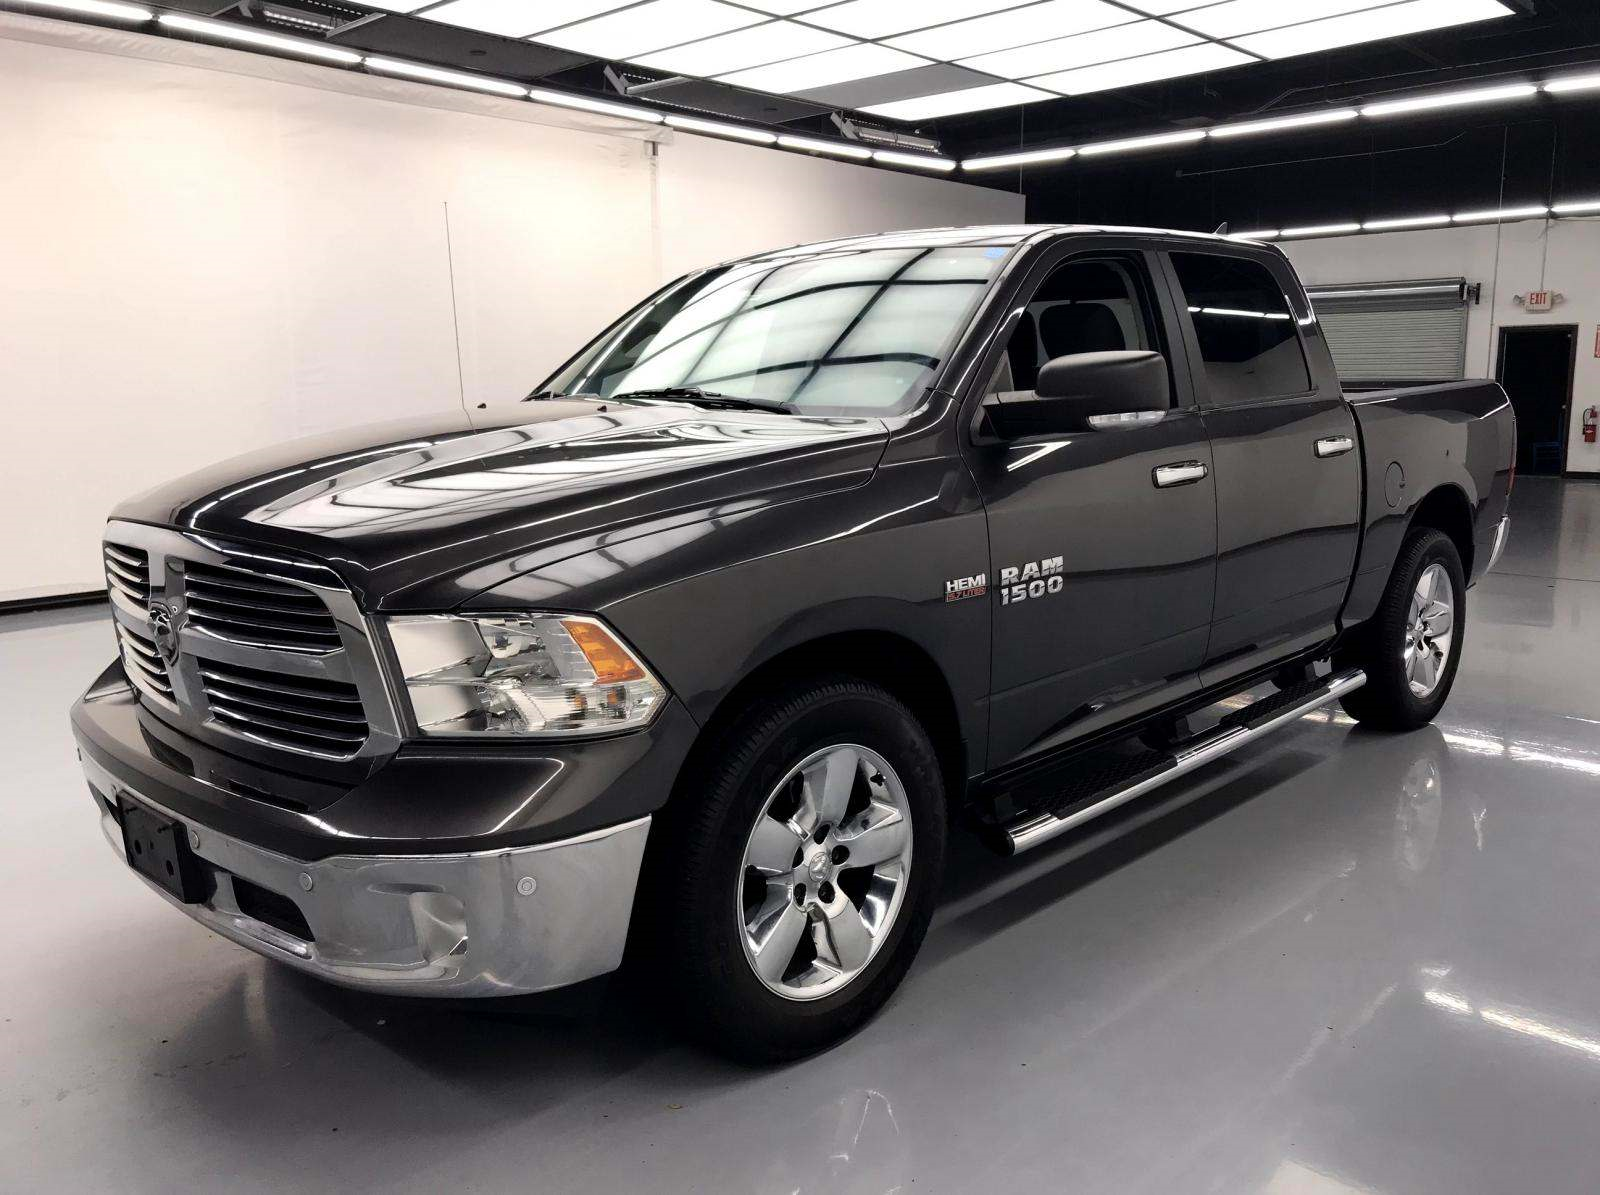 This 2019 Dodge Ram 1500 Is For Sale In Stafford Tx Price 51950 00 Mileage 12366 Color Billet Silver Metallic In 2020 Land Rover Models Land Rover Buy Used Cars